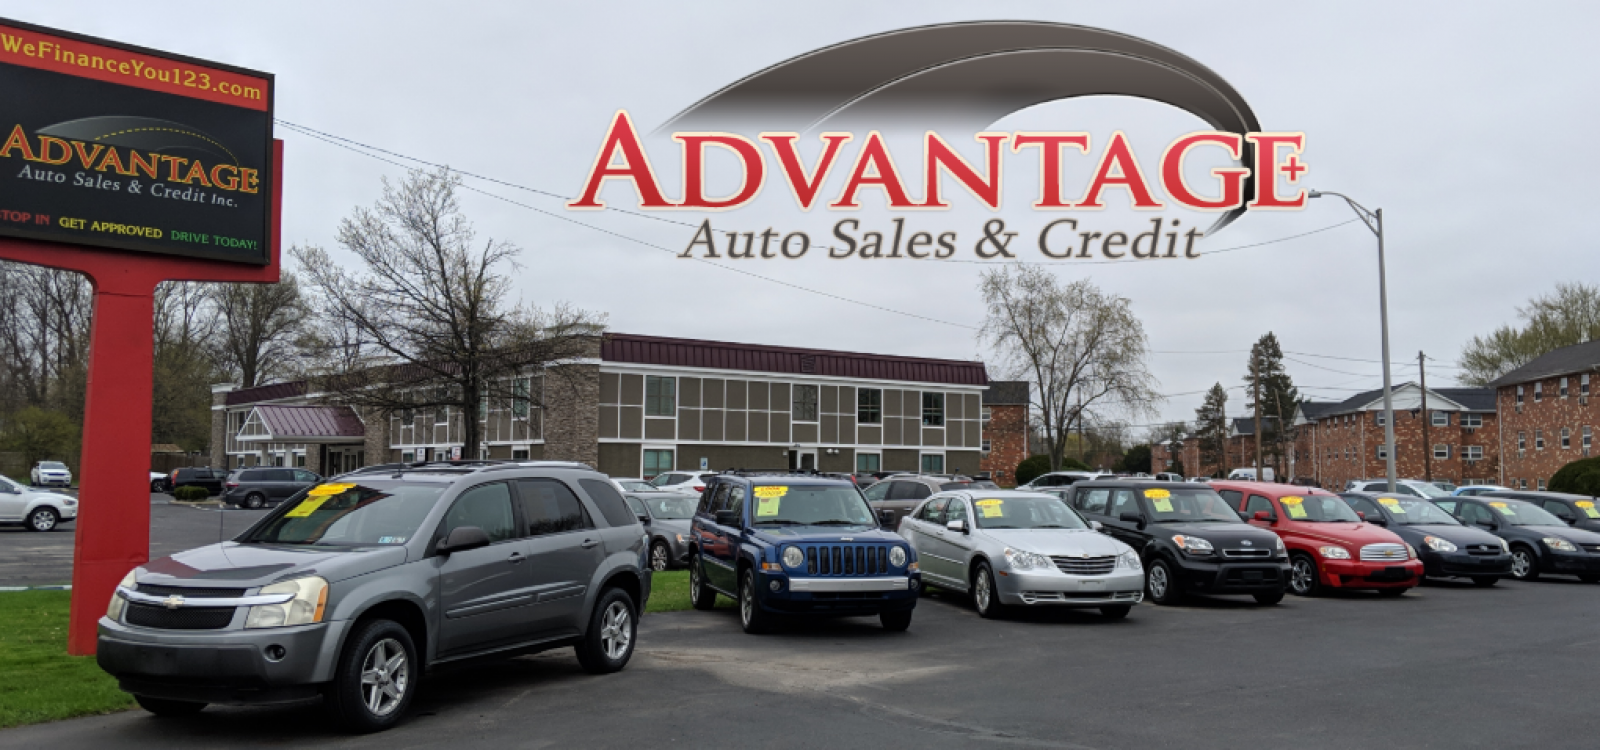 Used Bhph Cars Quakertown Pa Bad Credit Auto Loans Allentown Pa